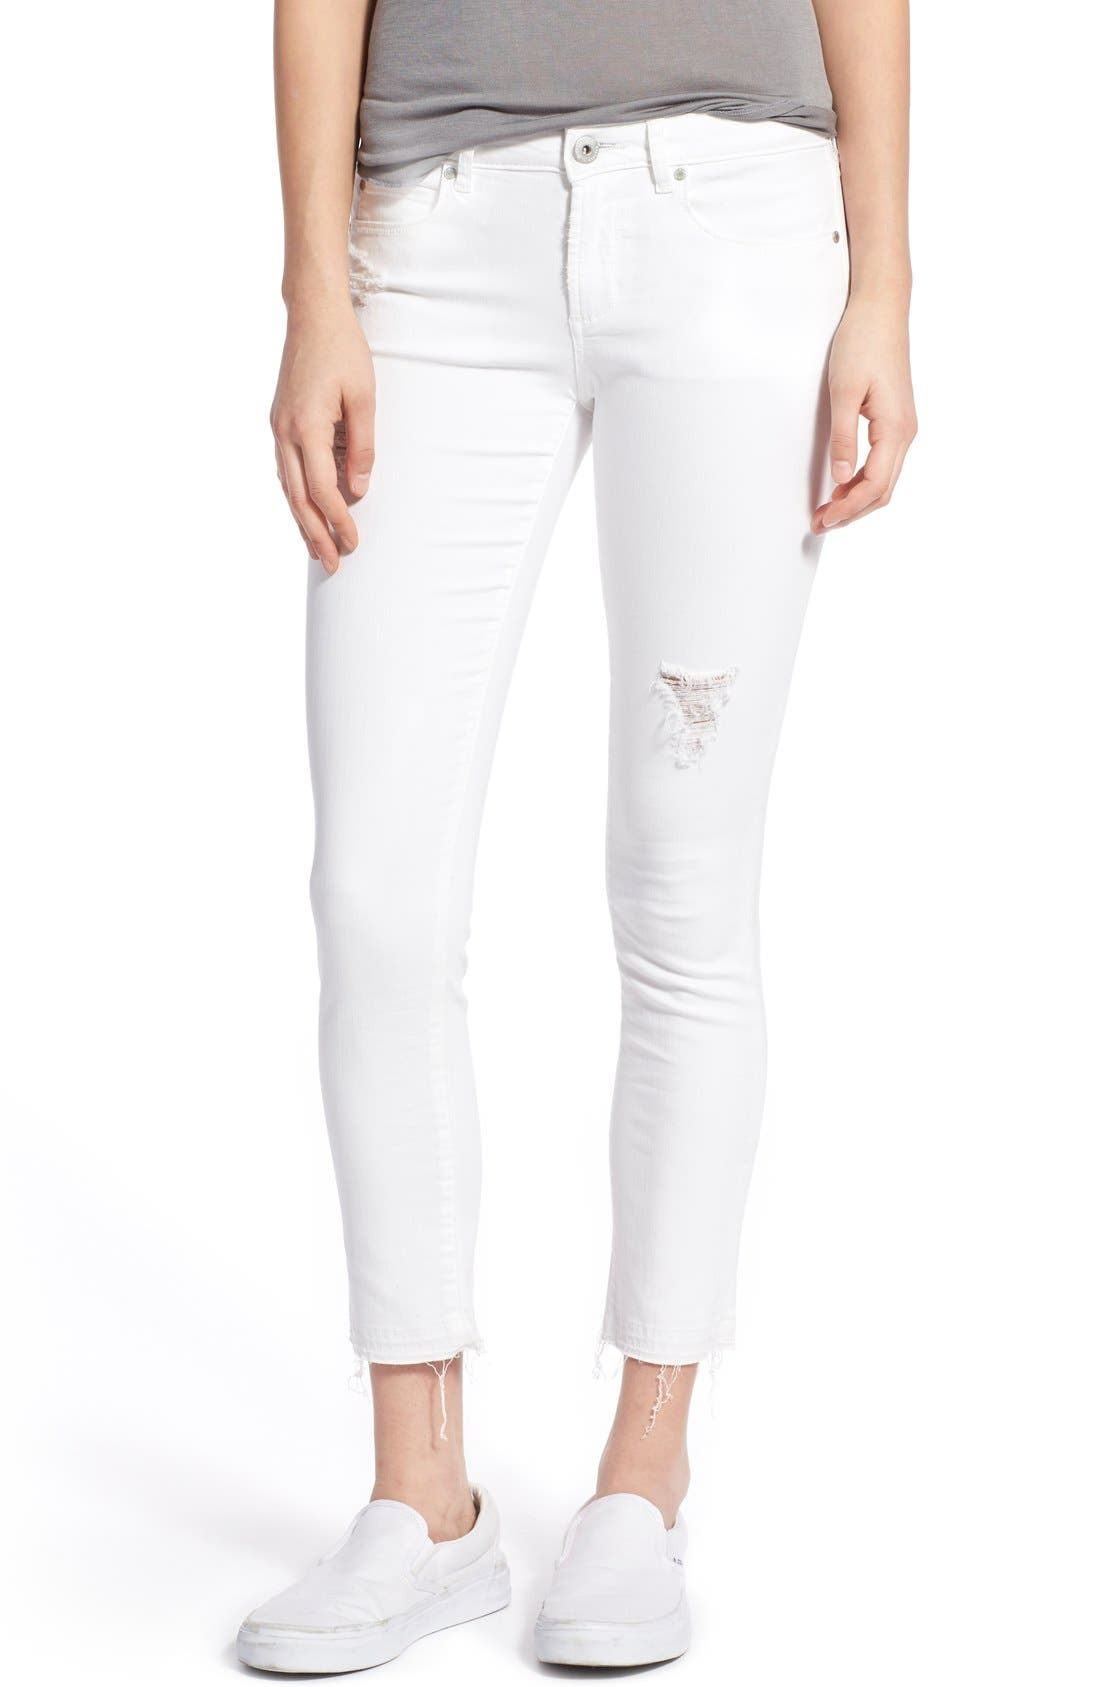 'Carly' Frayed Hem Crop Skinny Jeans, Main, color, 110